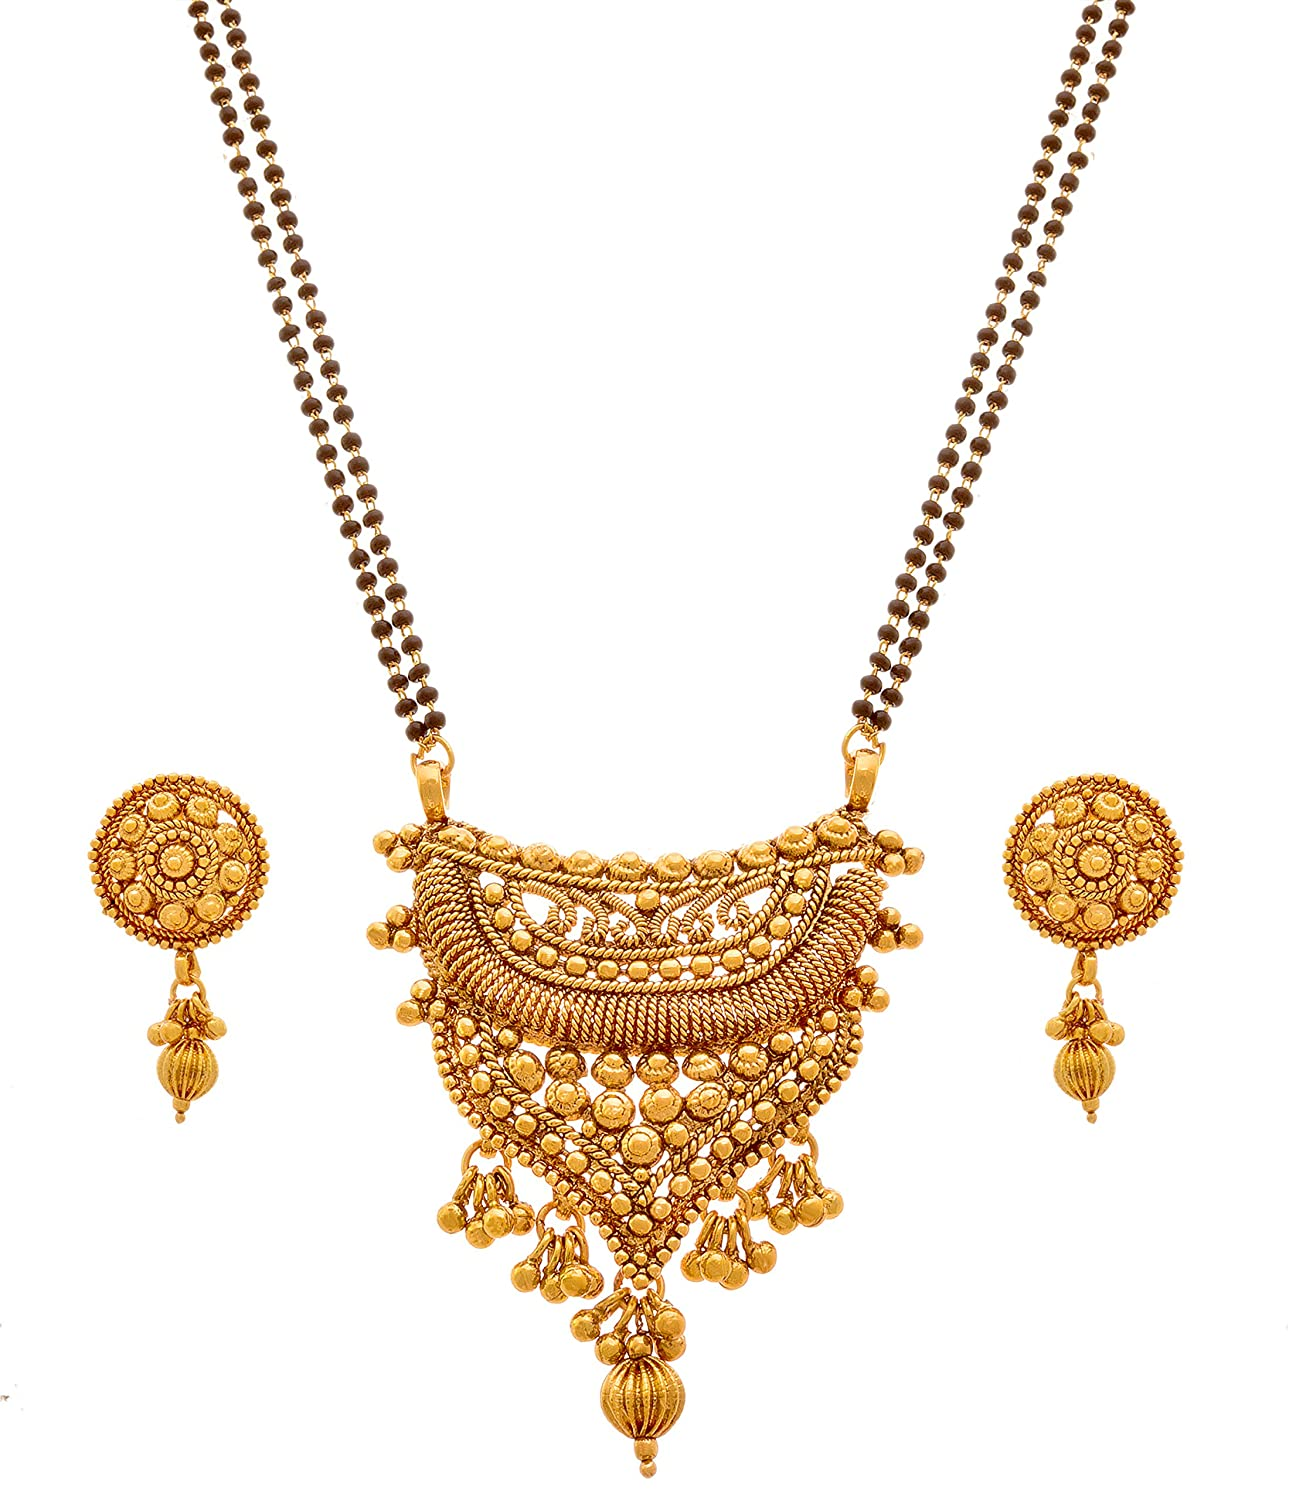 Gold Plated Mangalsutra With Earring And Black Bead Chain